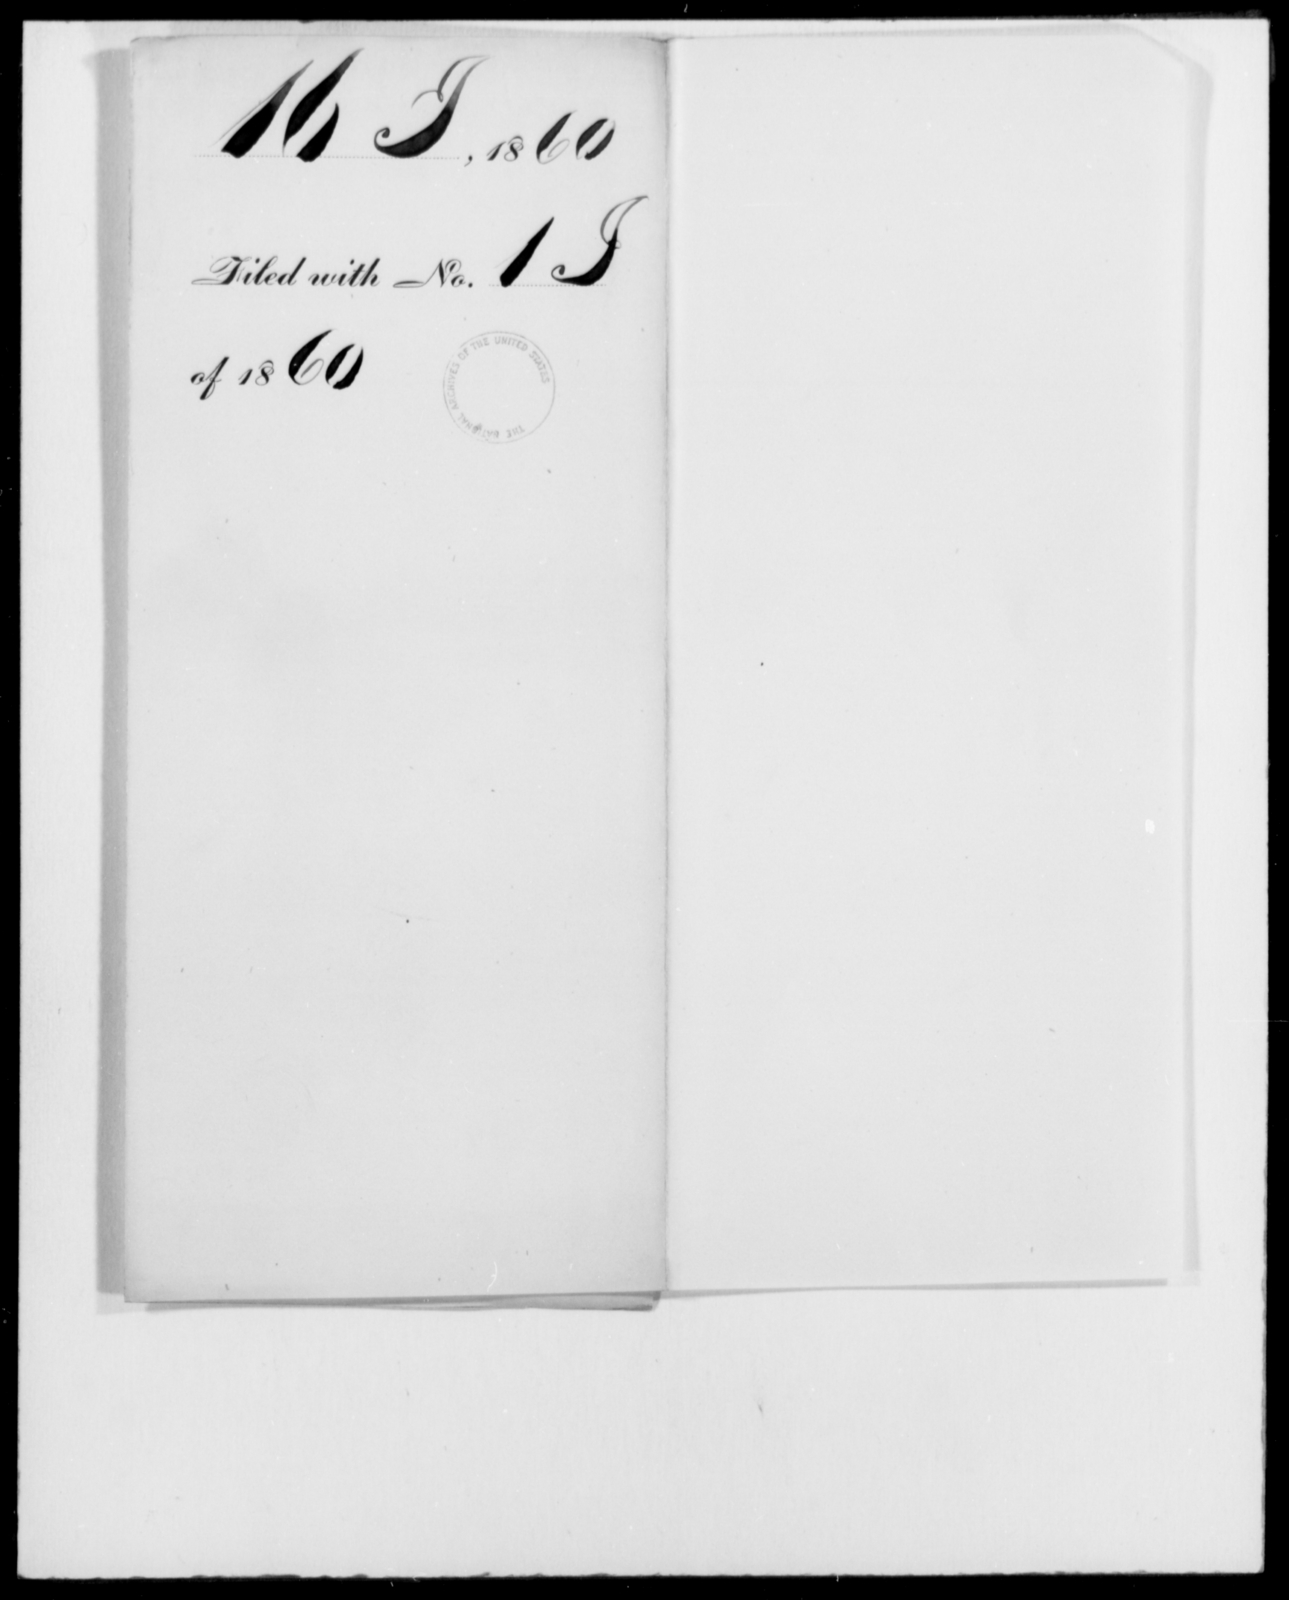 [Blank], [Blank] - State: [Blank] - Year: 1860 - File Number: I16